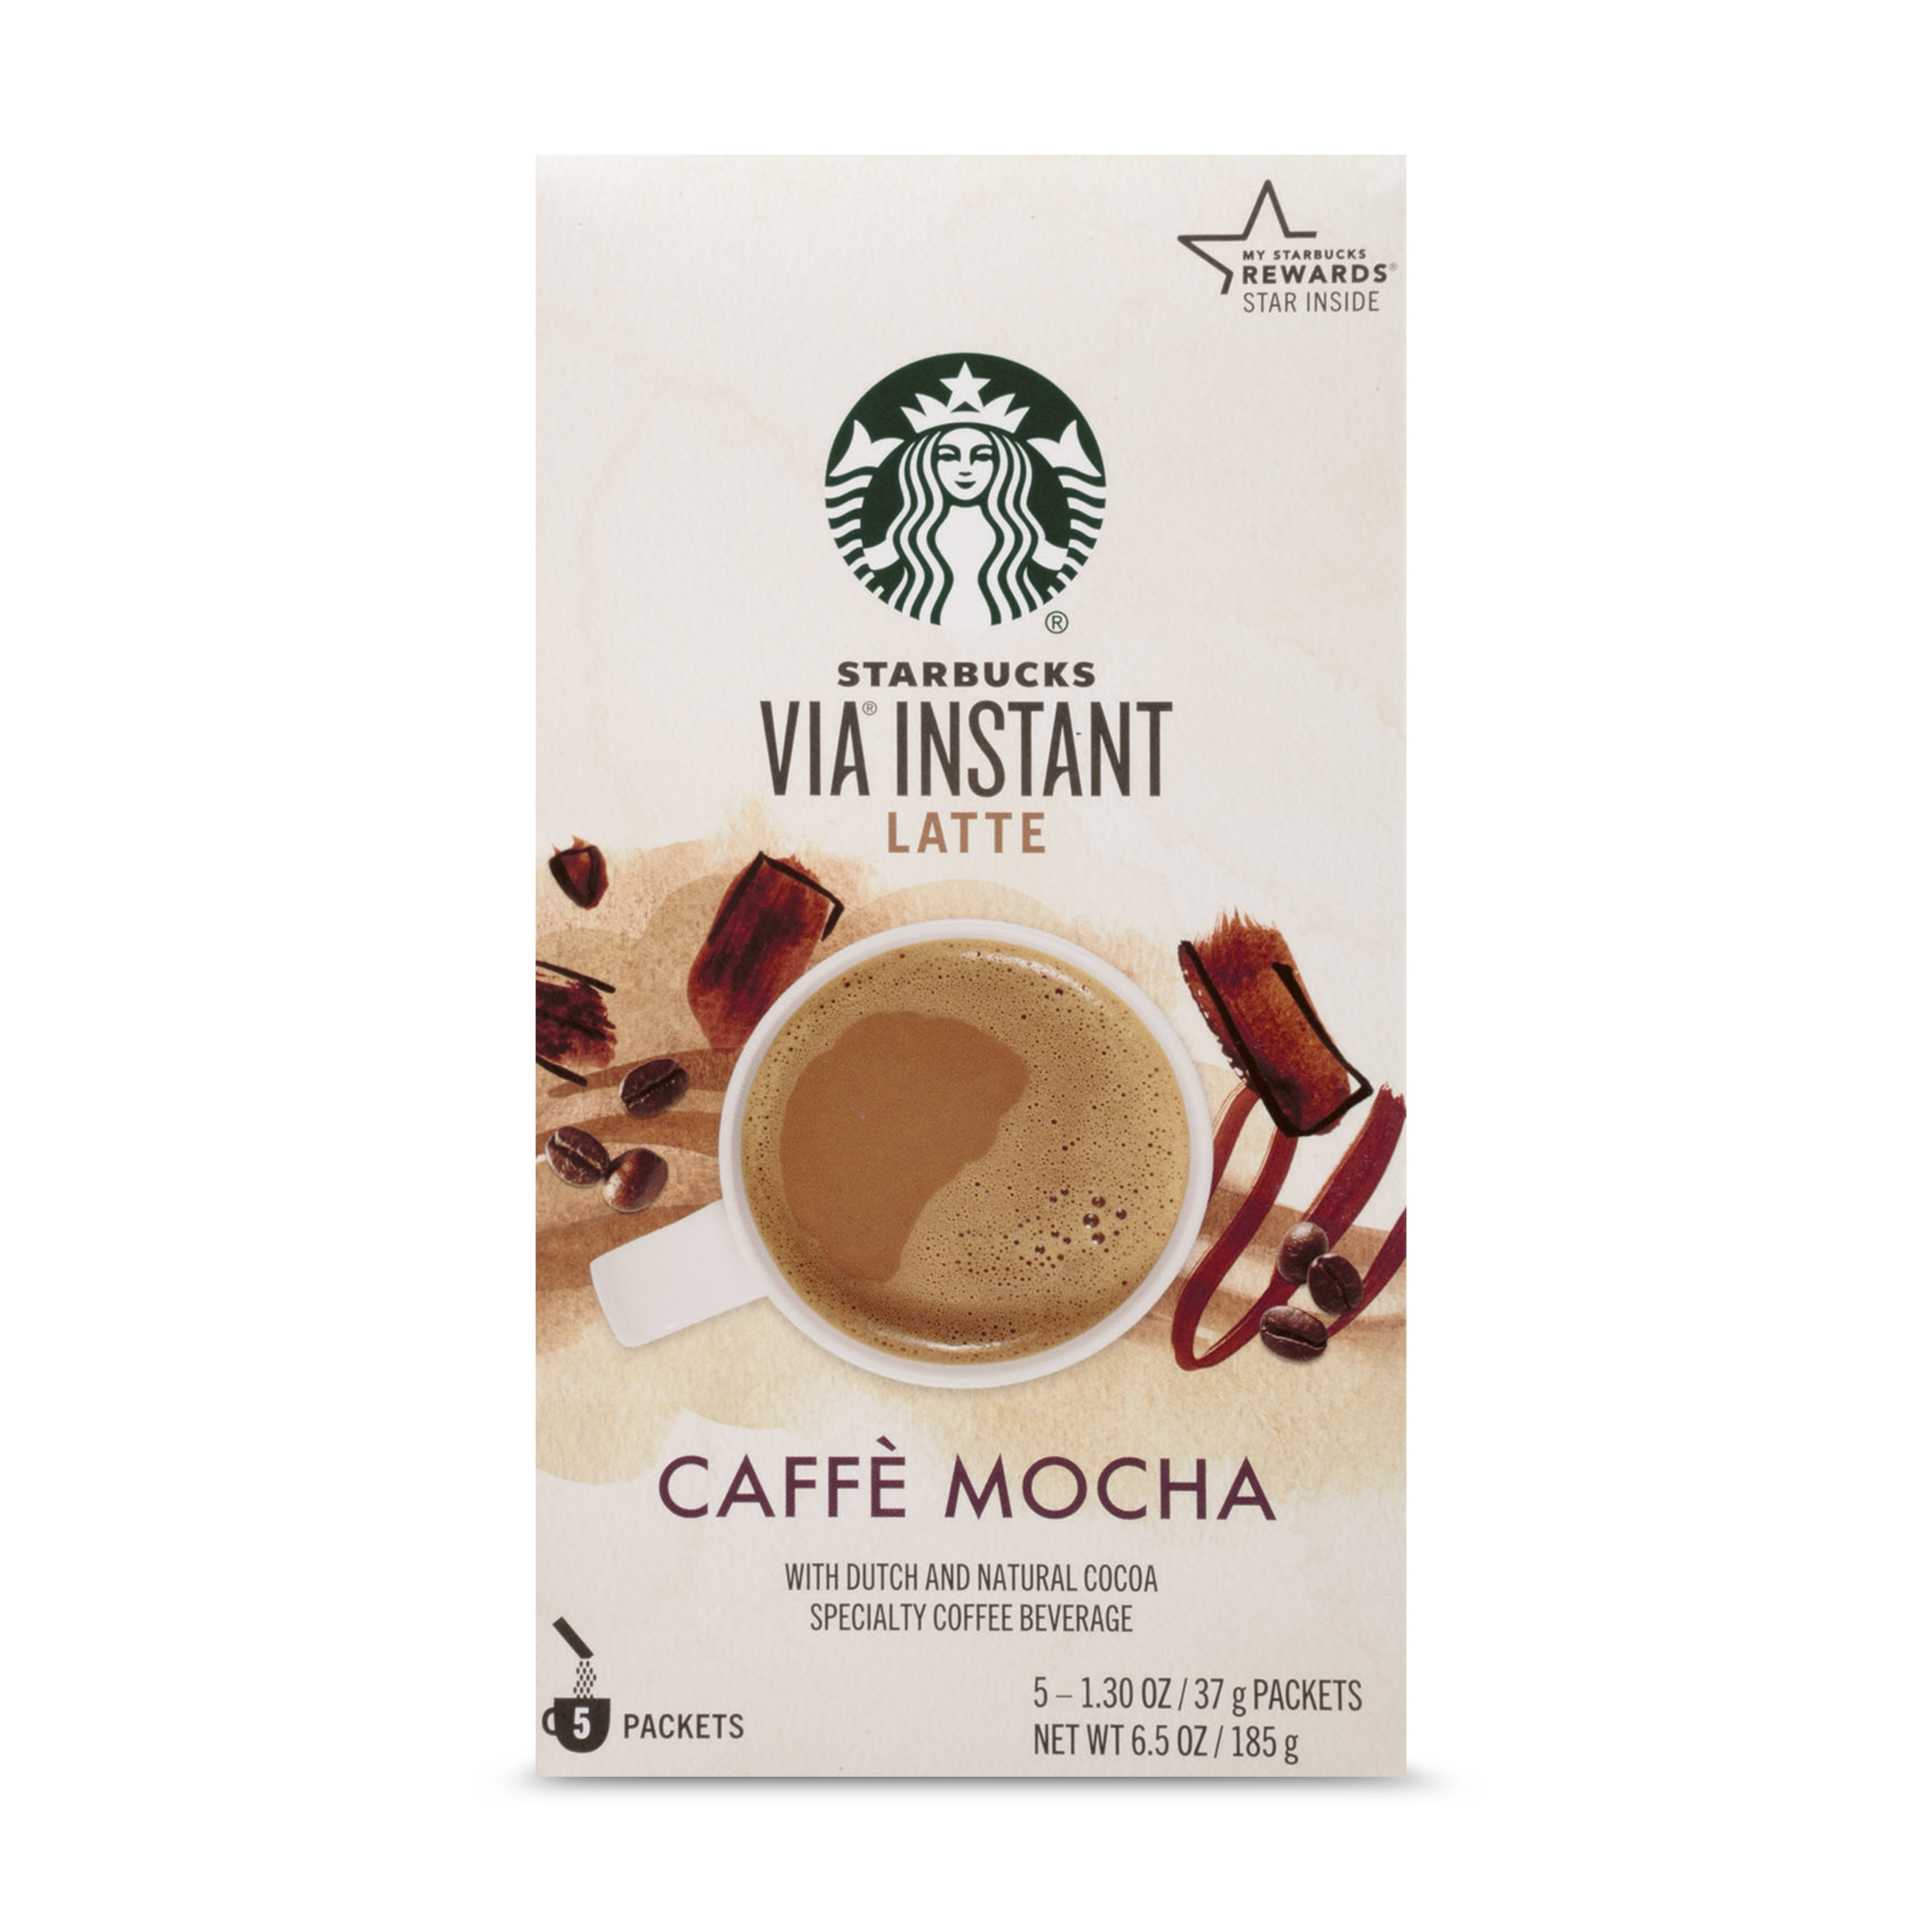 Starbucks VIA Instant Caffe Mocha Latte (1 box of 5 packets)